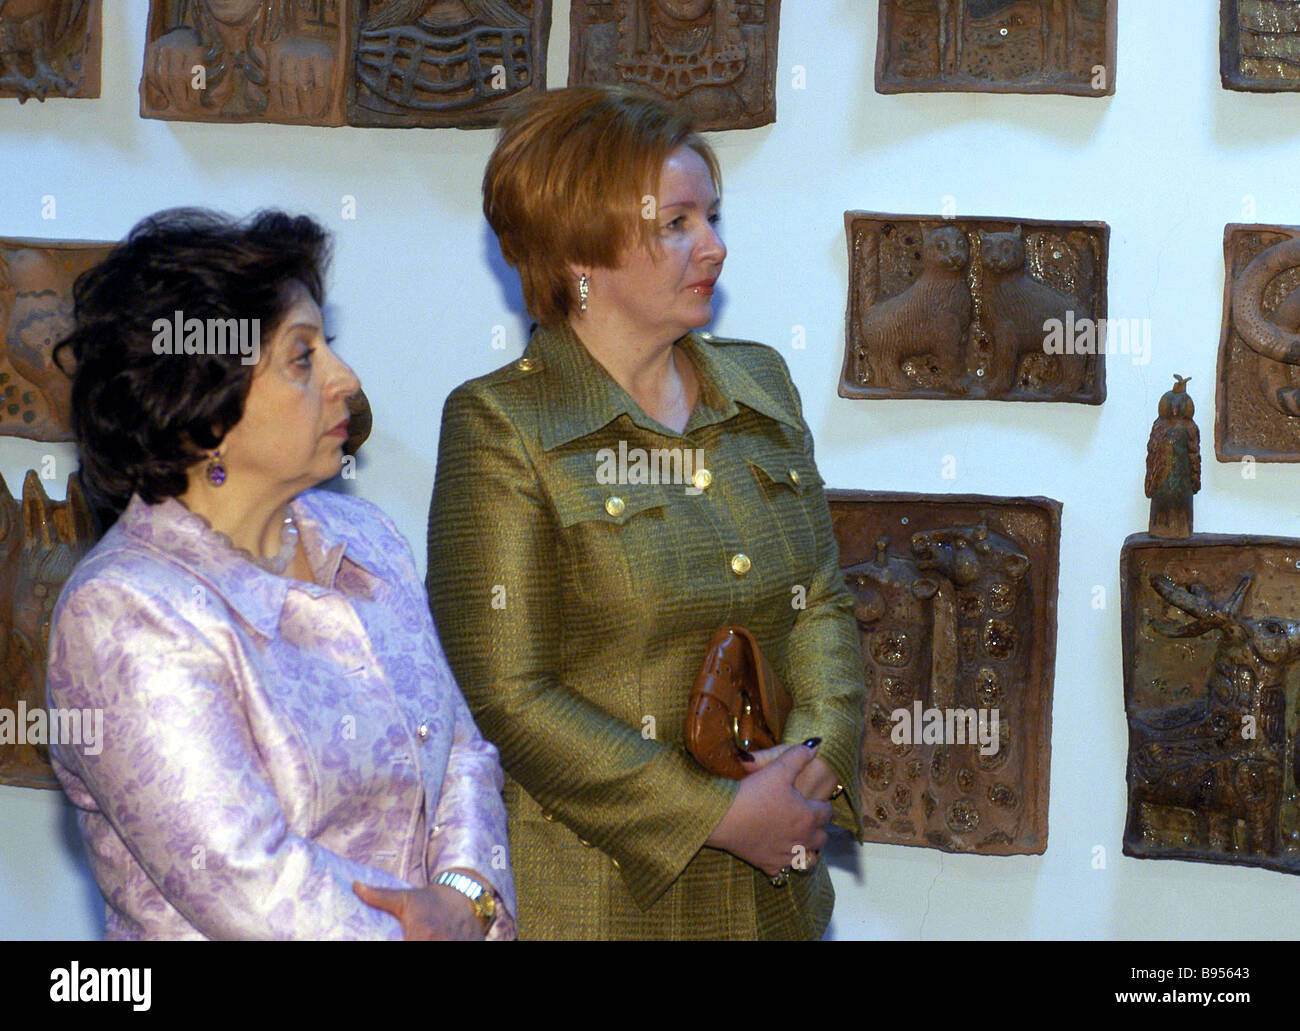 First lady of Armenia Bella Kocharyan left and first lady of Russia Ljudmila Putina right during their visit to - Stock Image